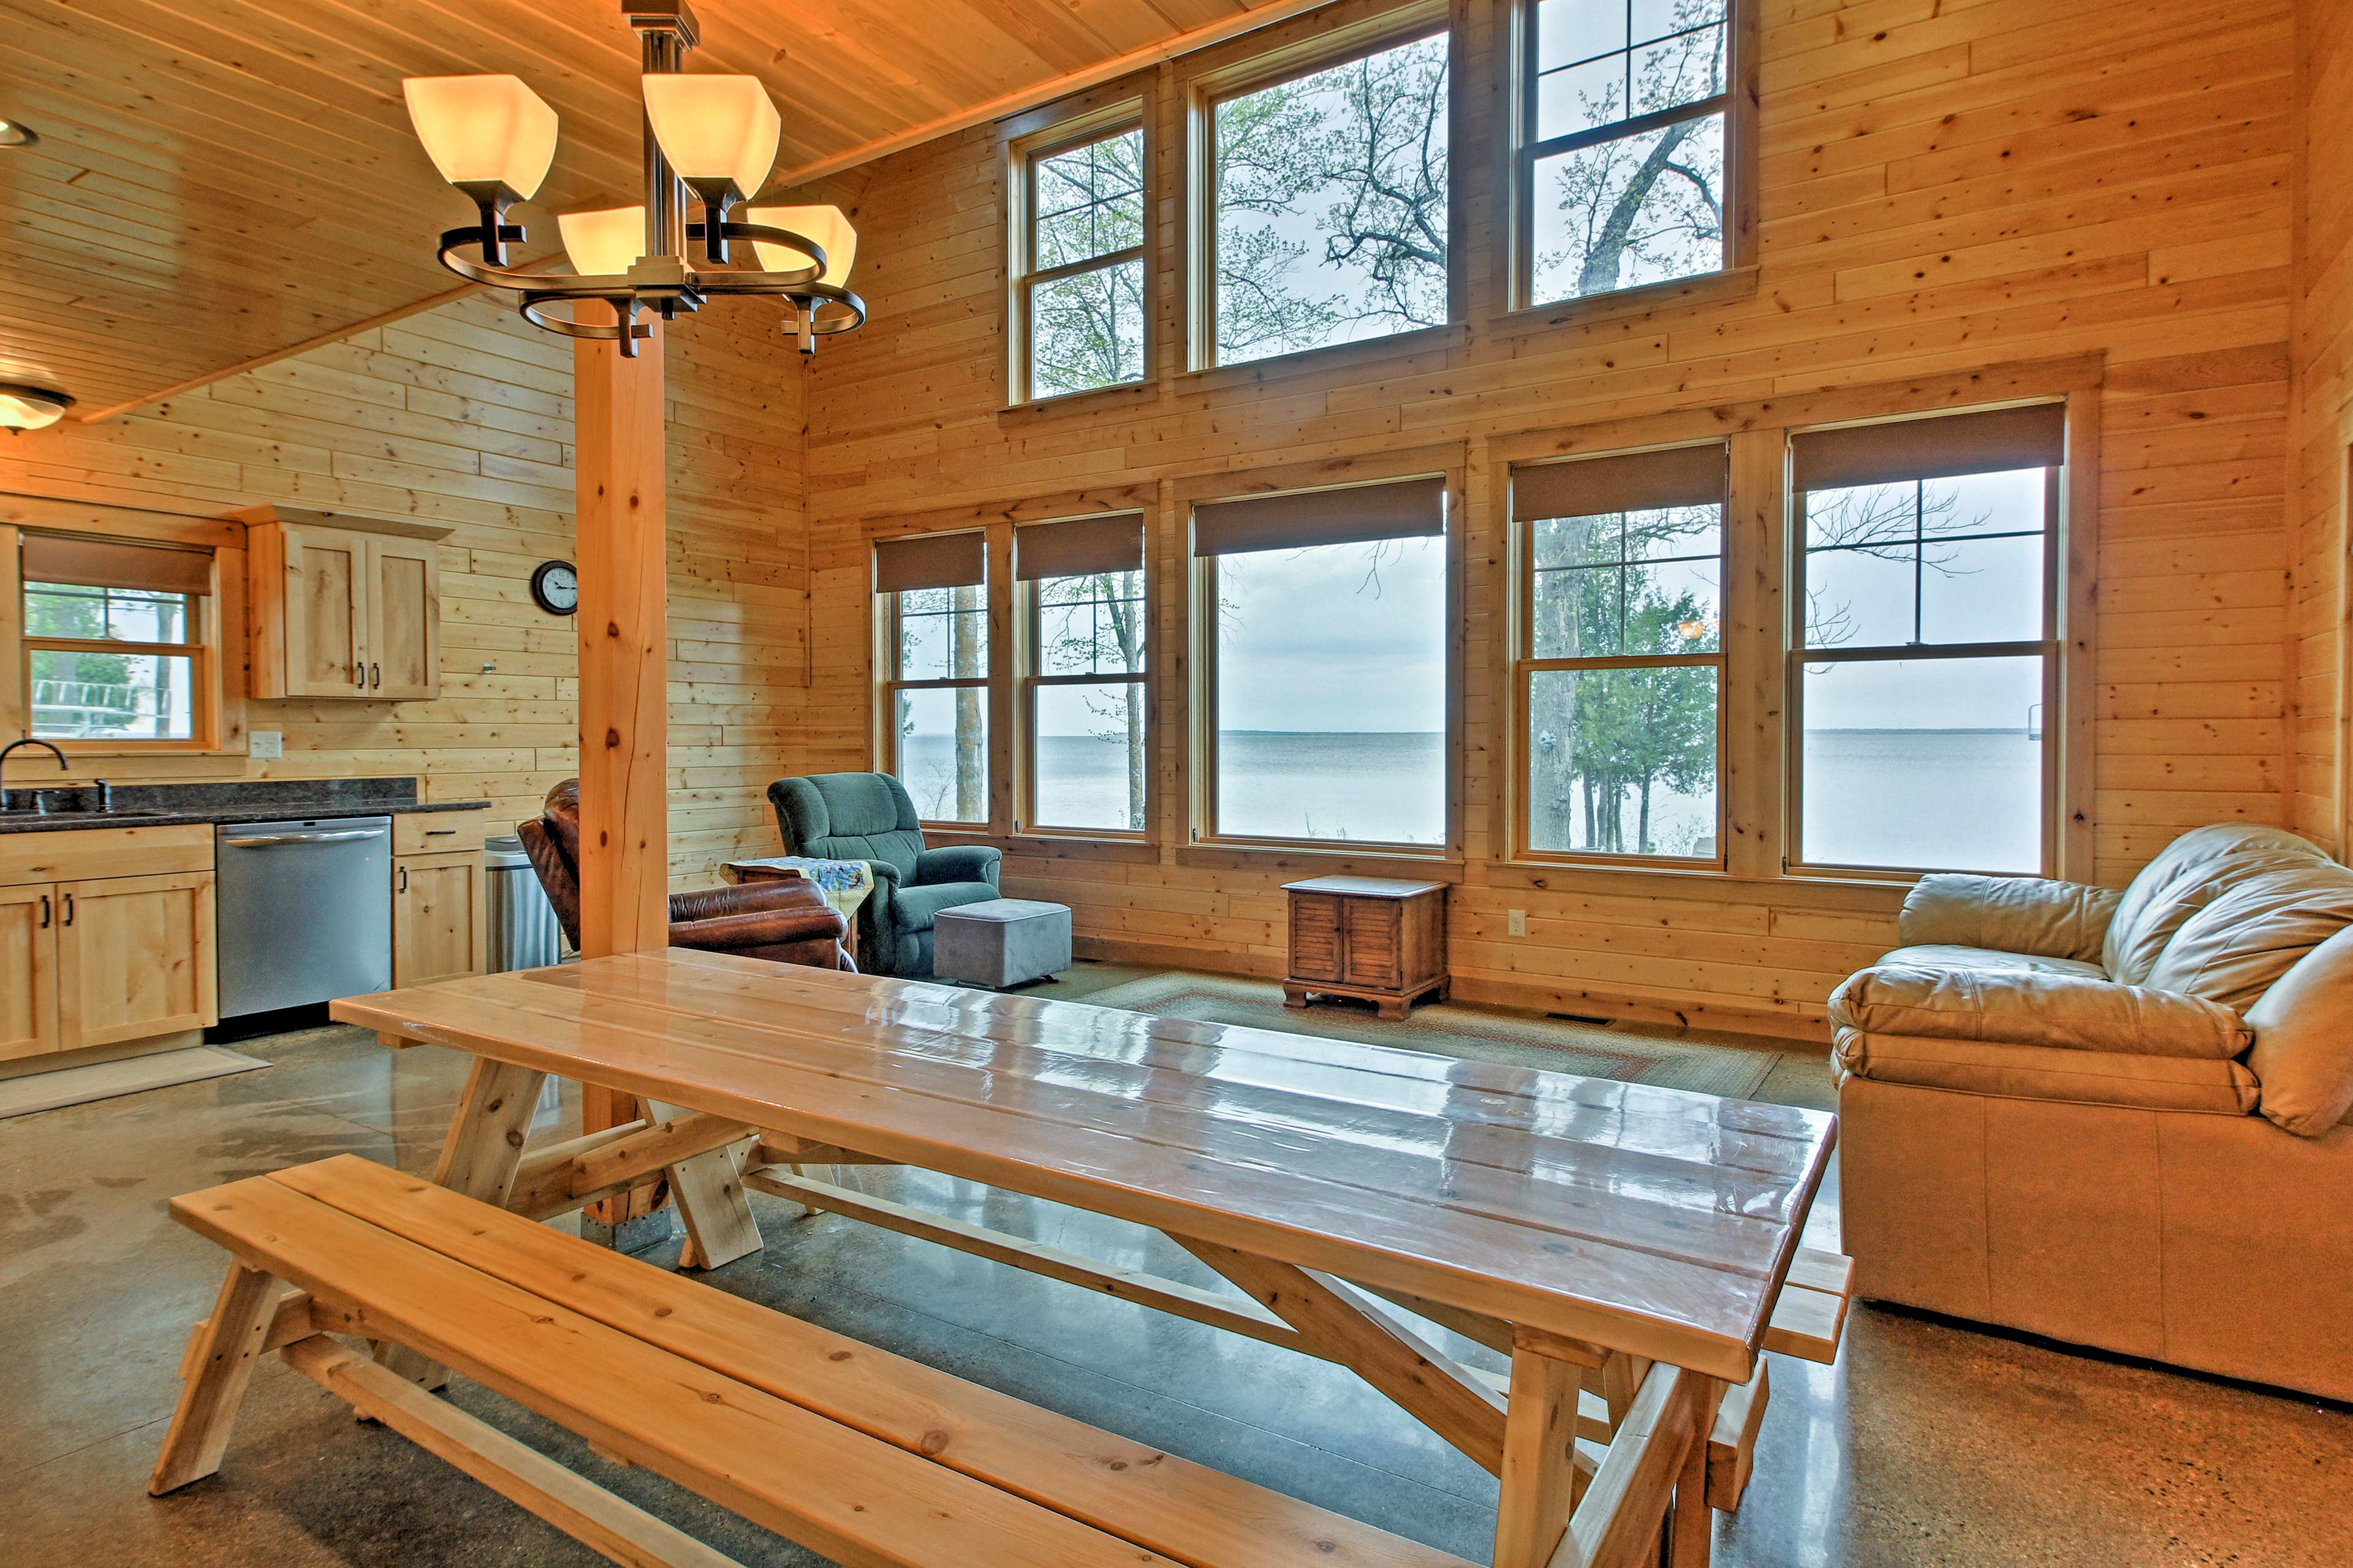 All 8 guests can look out upon the lake while you enjoy a home-cooked meal!